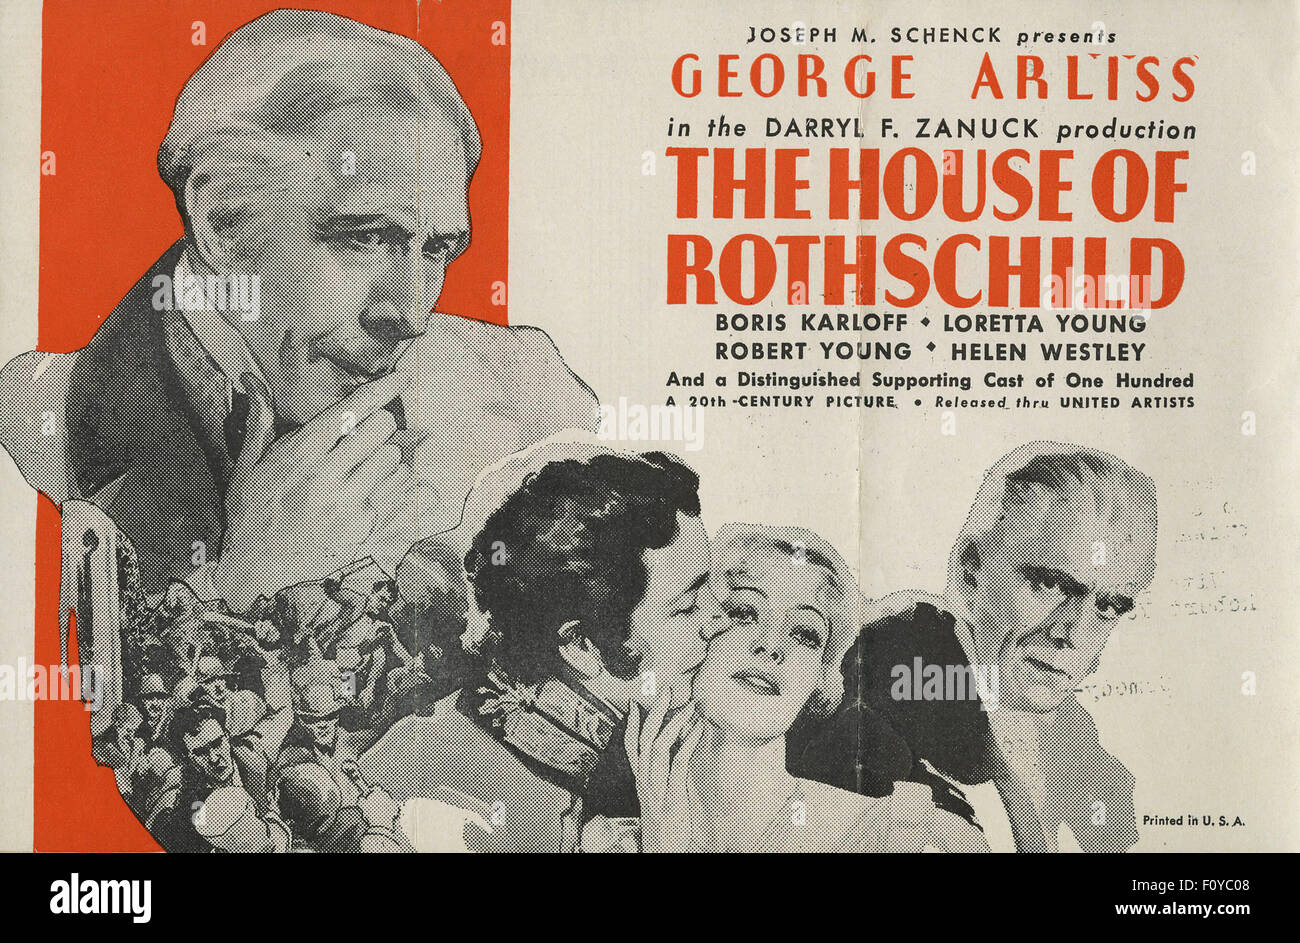 The House of Rothschild - 02 - Movie Poster - Stock Image